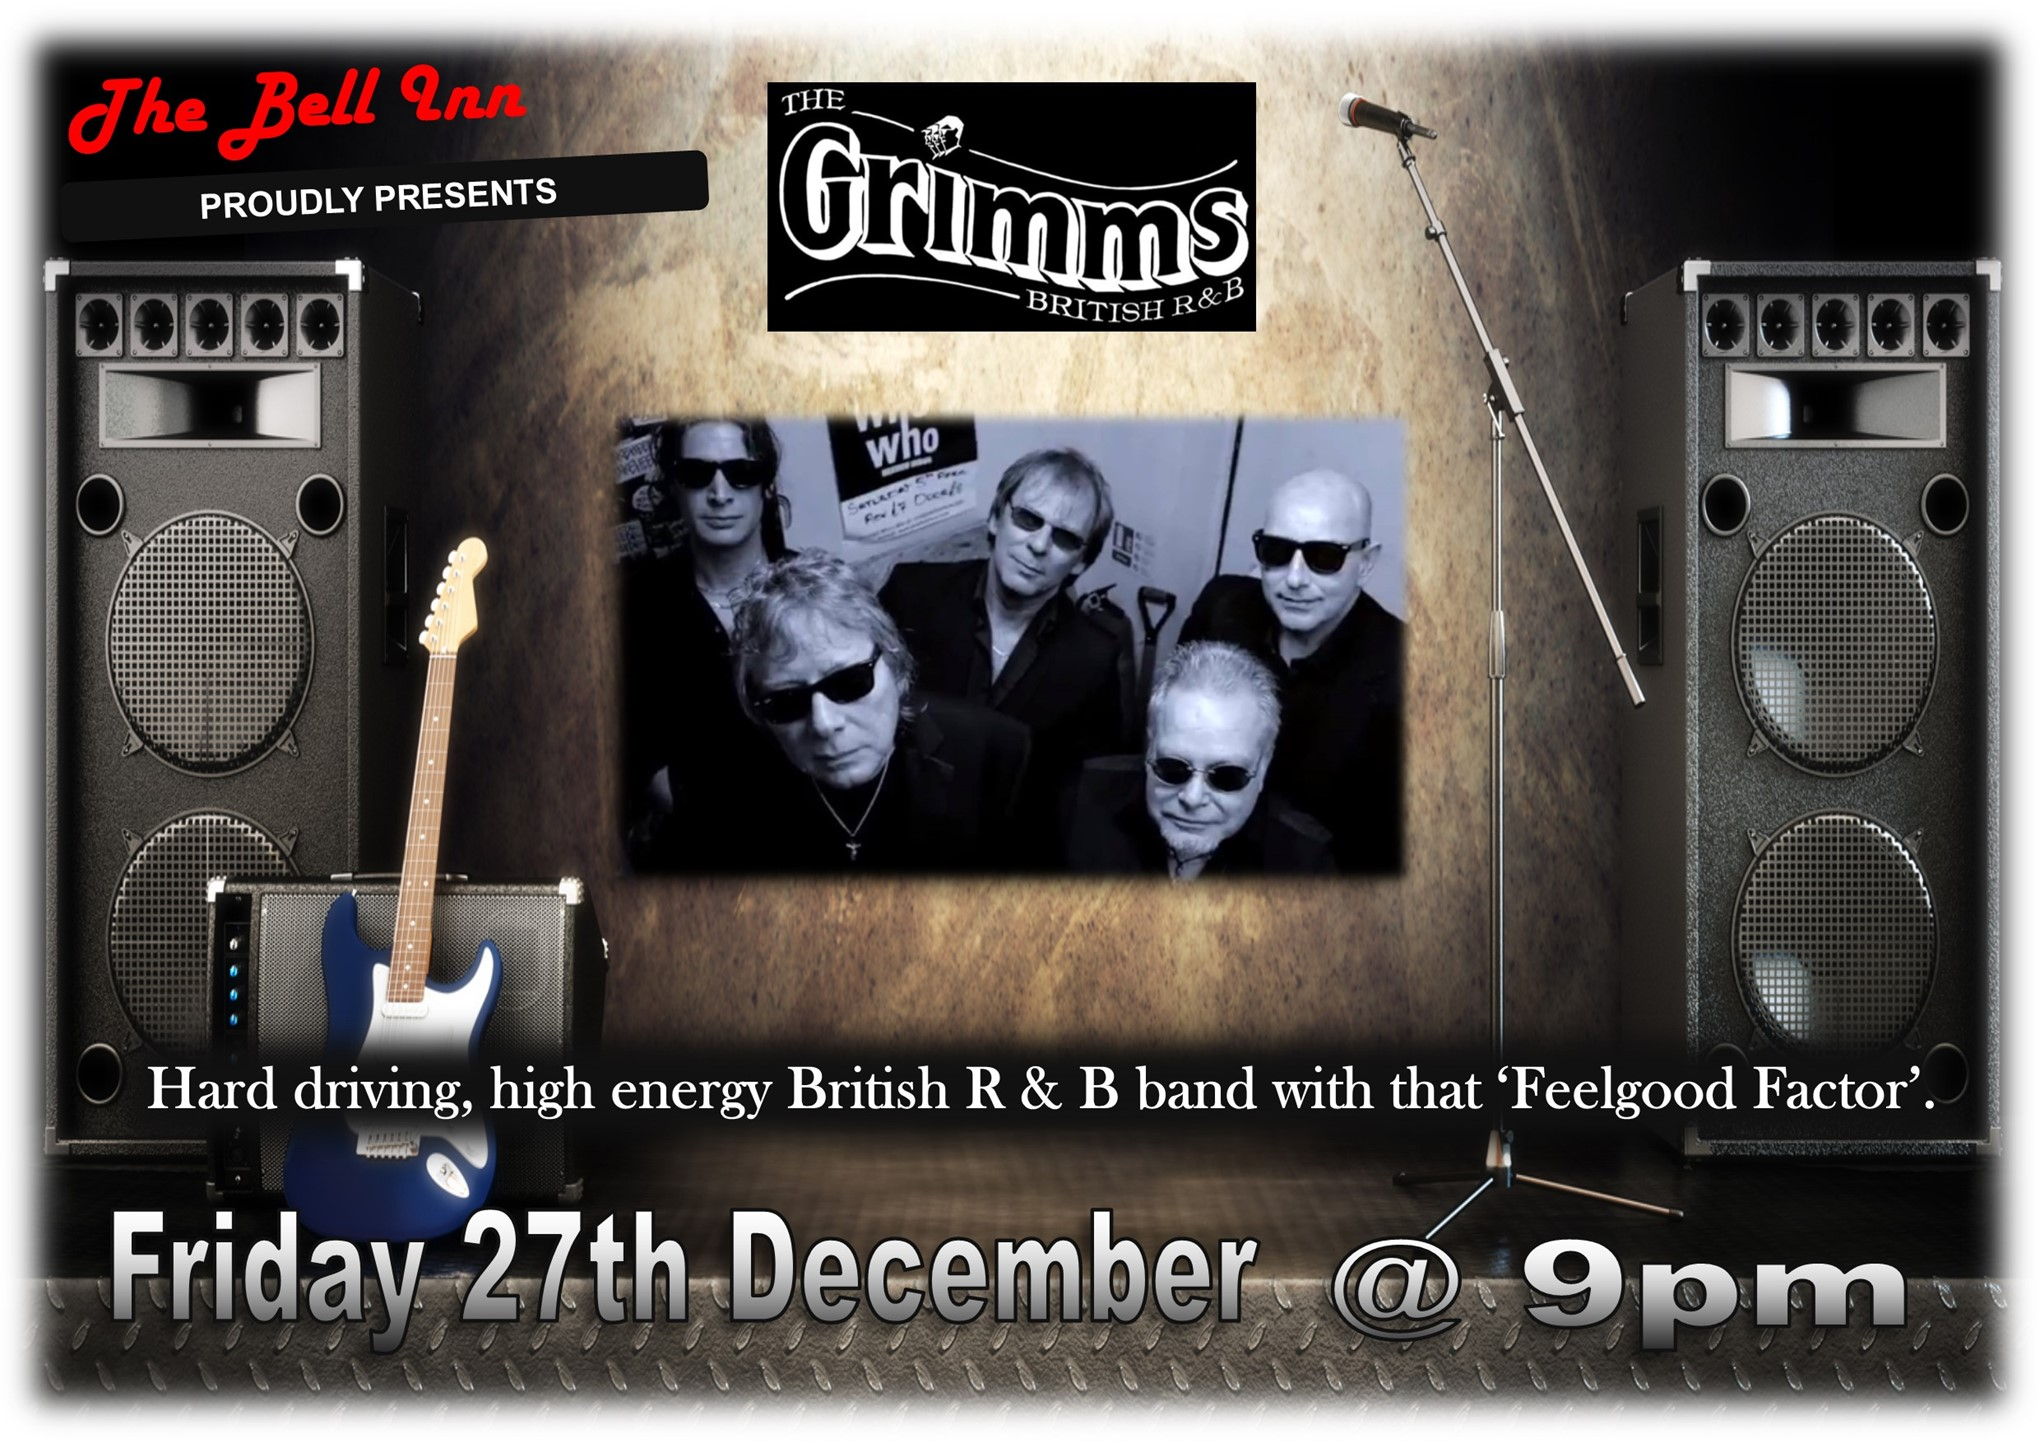 Live Music with the Grimms